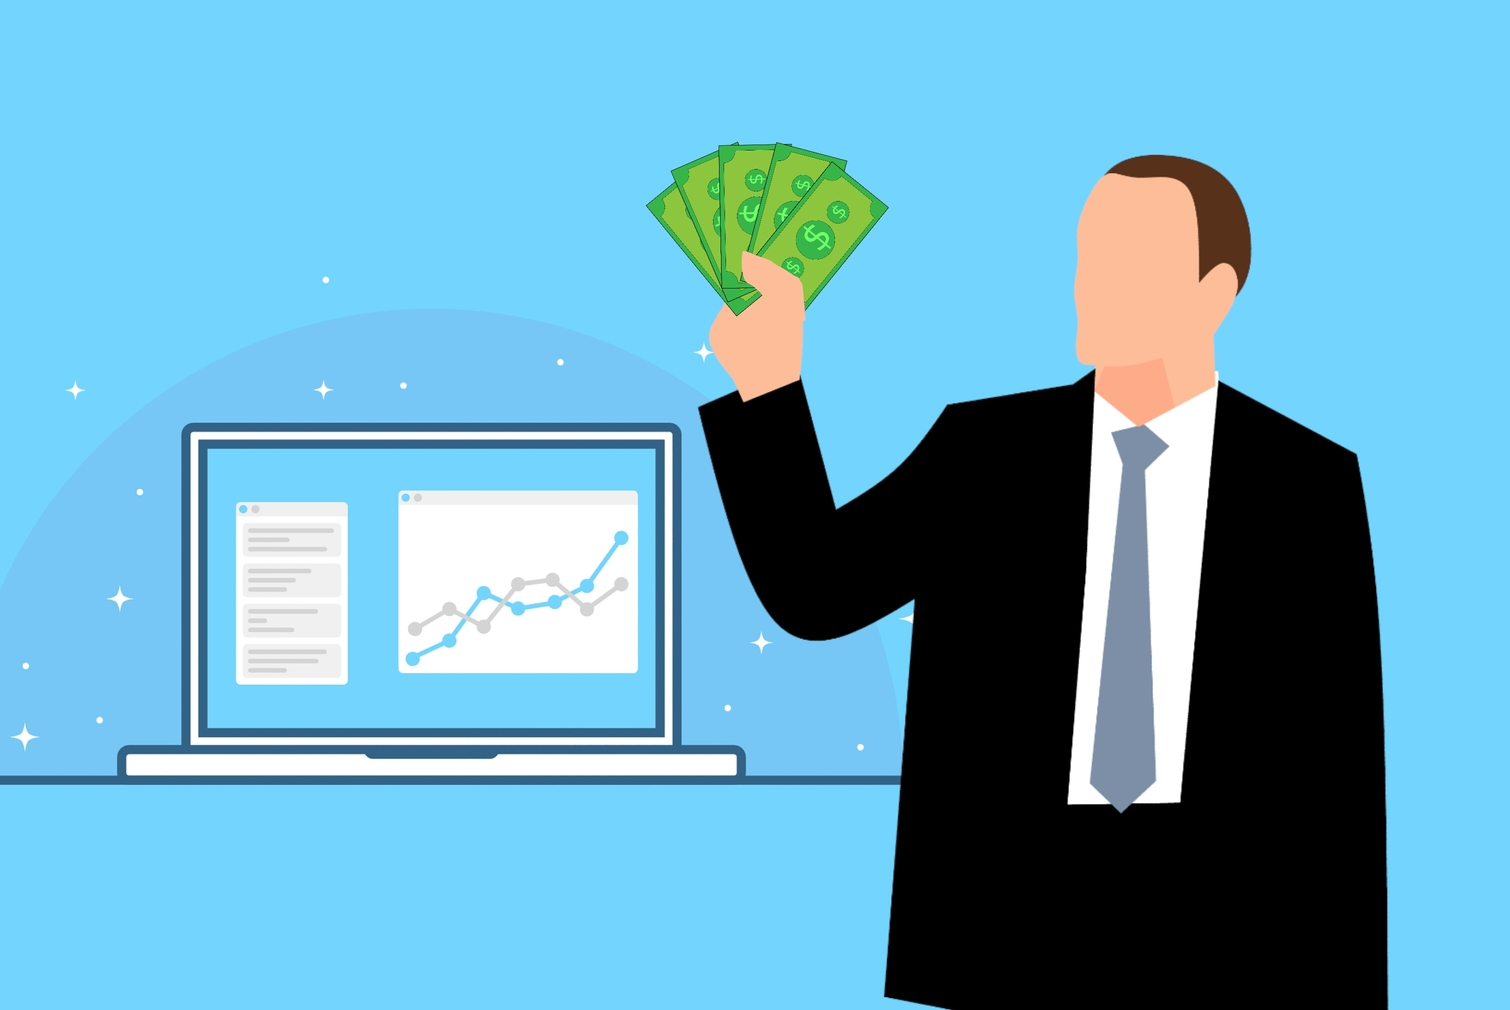 Man holding a lot of money, and profit increase graph on the background